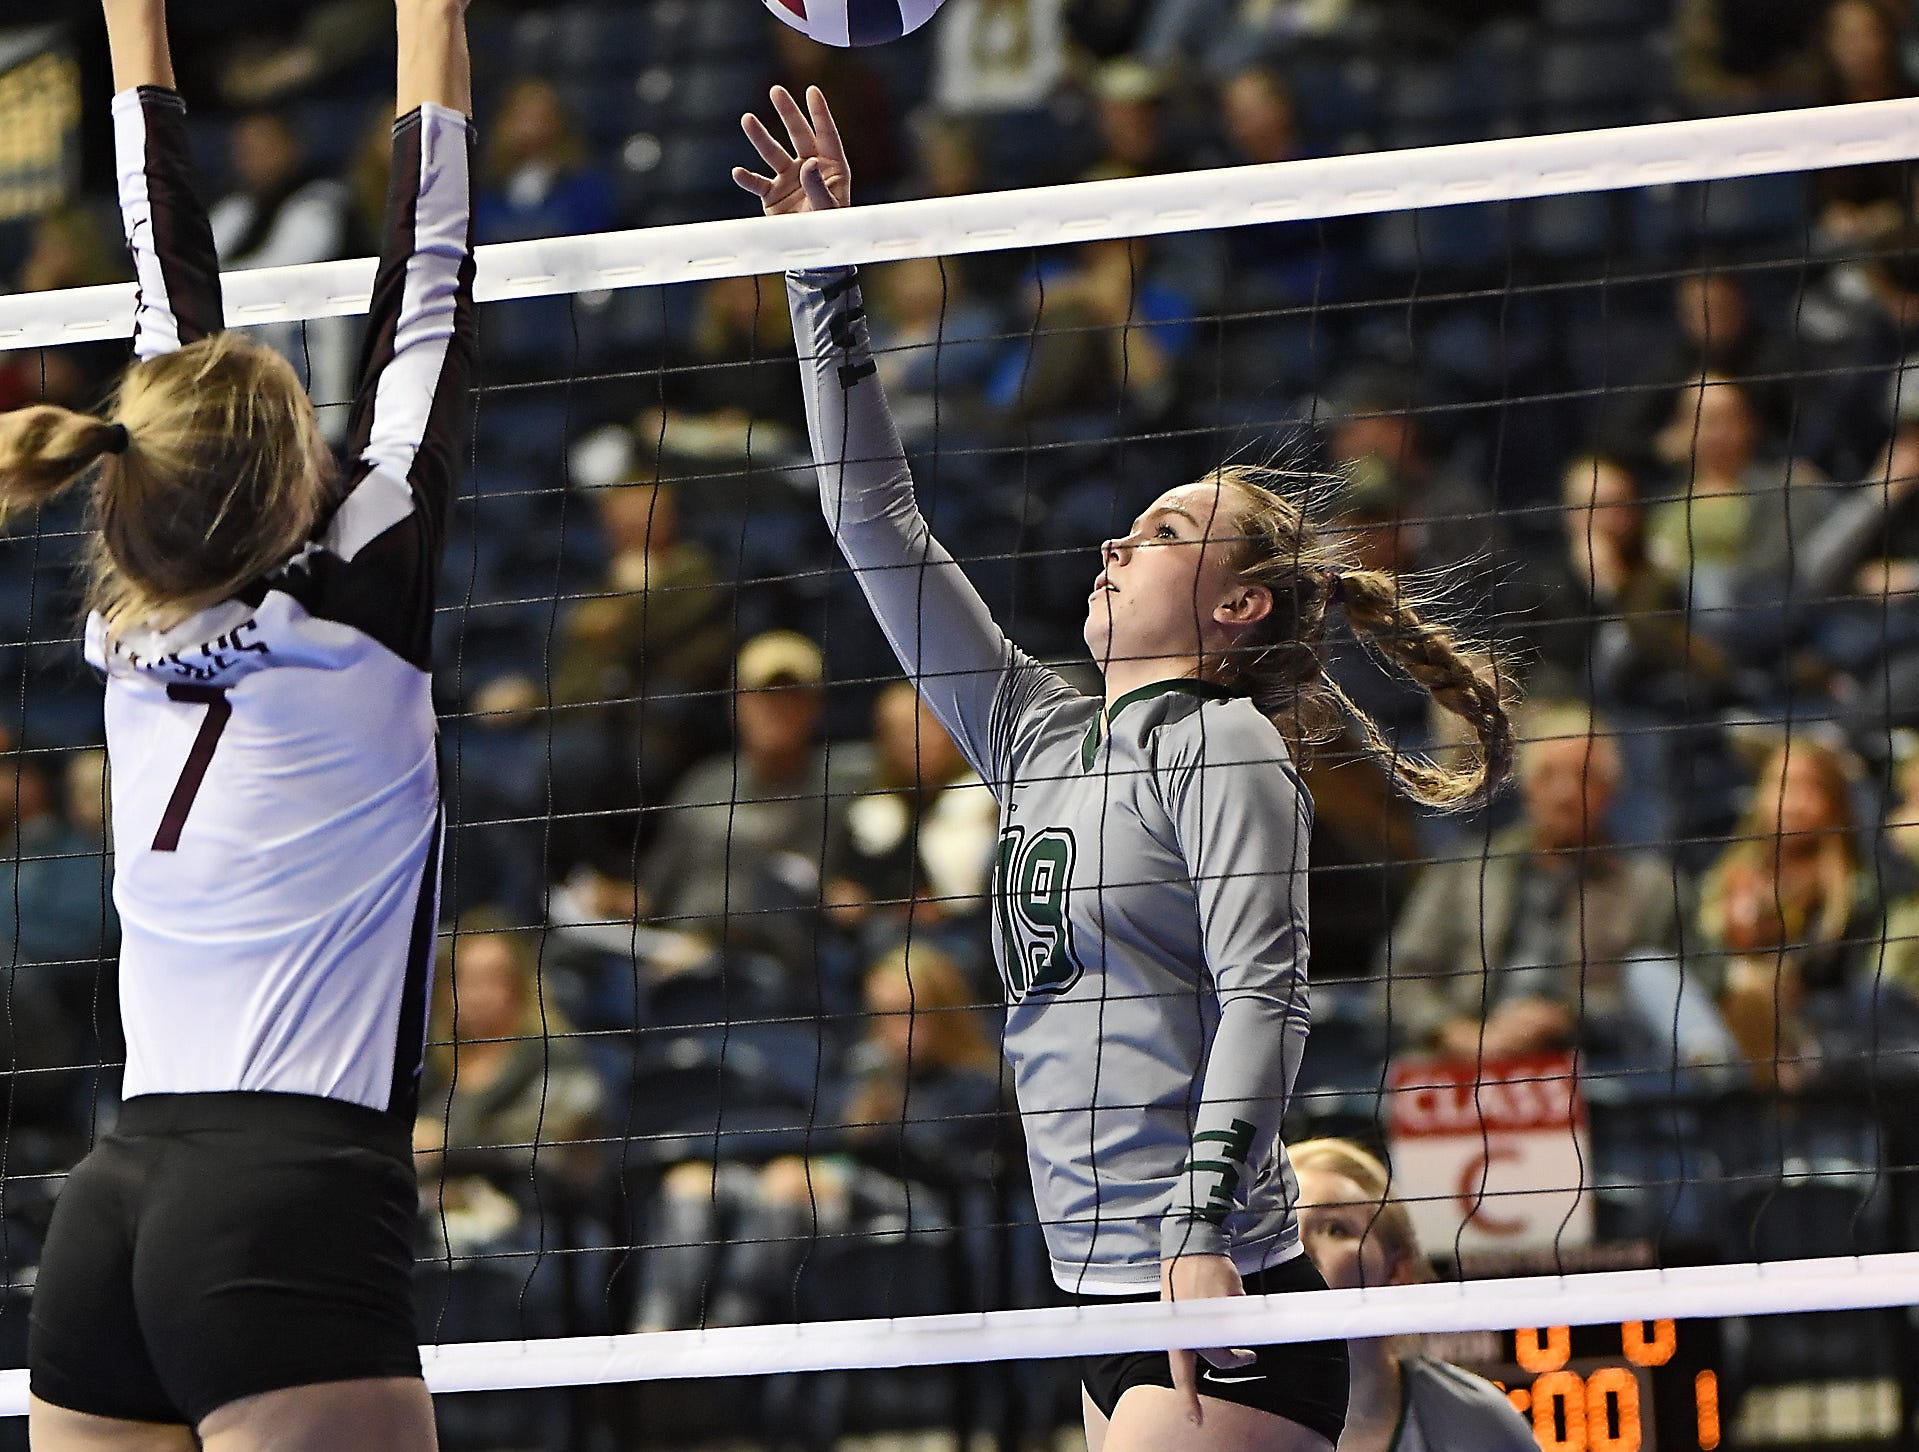 Brianna Bergum of Tri-Cities tips the ball in a match with Manhattan Christian at the All-Class State Volleyball Tournament at the Brick Breeden Fieldhouse in Bozeman Friday.